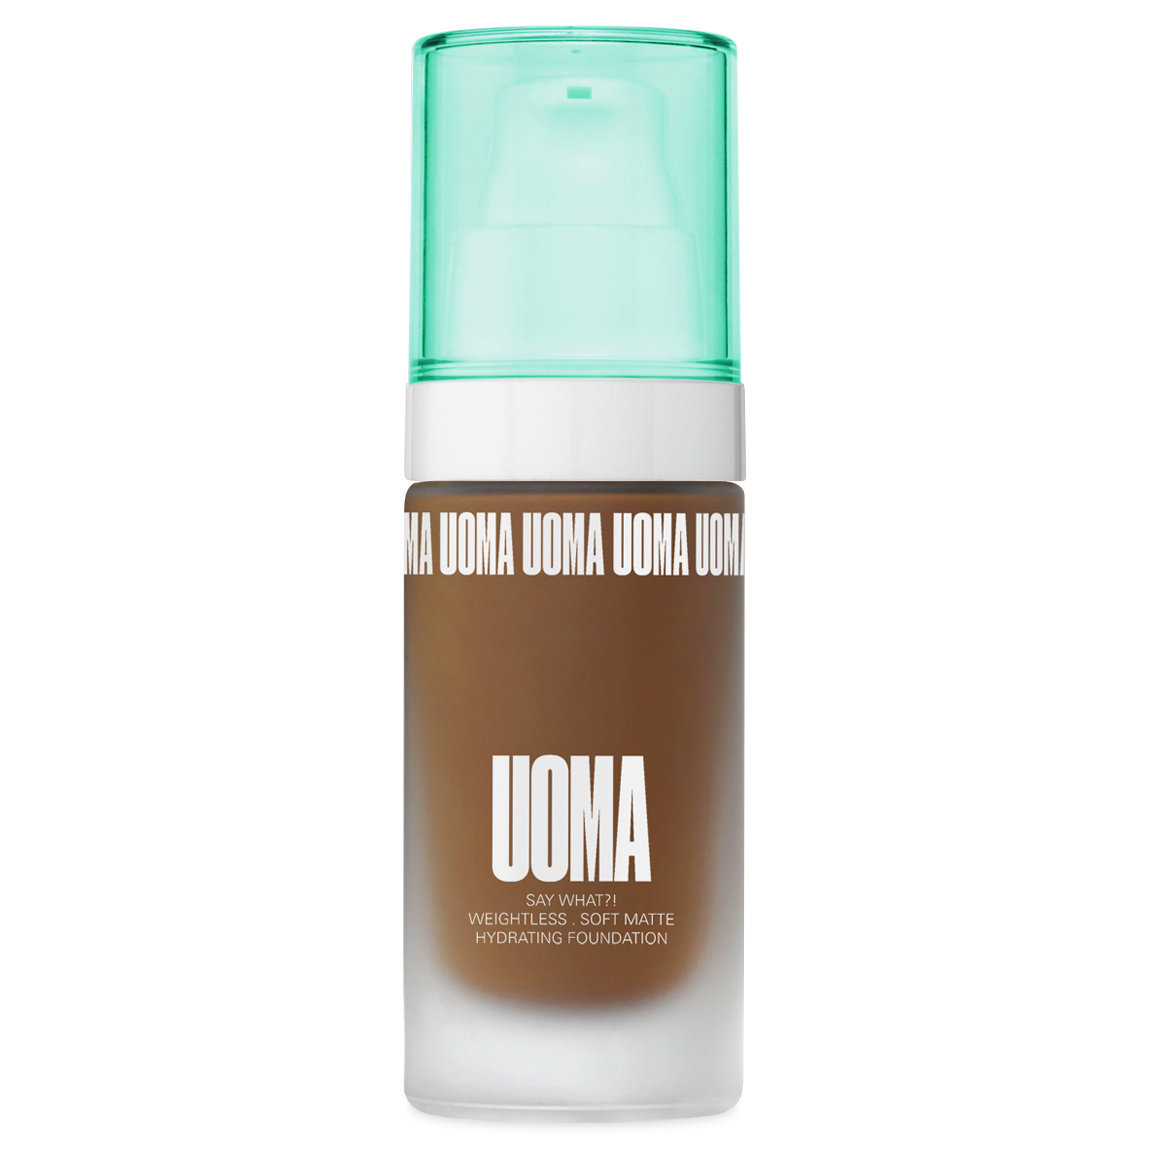 UOMA Beauty Say What?! Weightless Soft Matte Hydrating Foundation Black Pearl T1C alternative view 1.